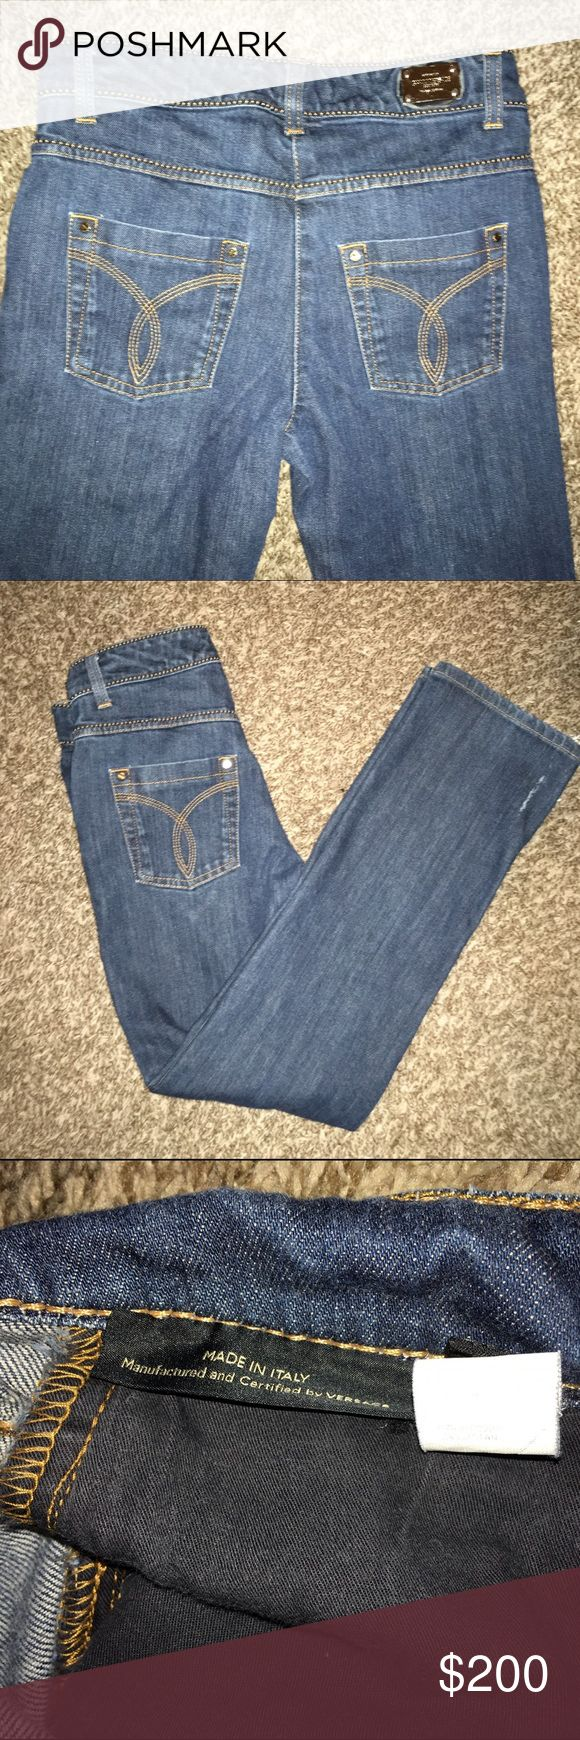 Gianni Versace women's slim boot cut jeans size 26 Like new. Only flaw is the bottom of the pant leg. Looks like a white mark but it's the jeans slightly splitting. Size 26 with gold seam detail. Gold metal plate that reads Gianni Versace. Made in Italy! Versace Jeans Boot Cut